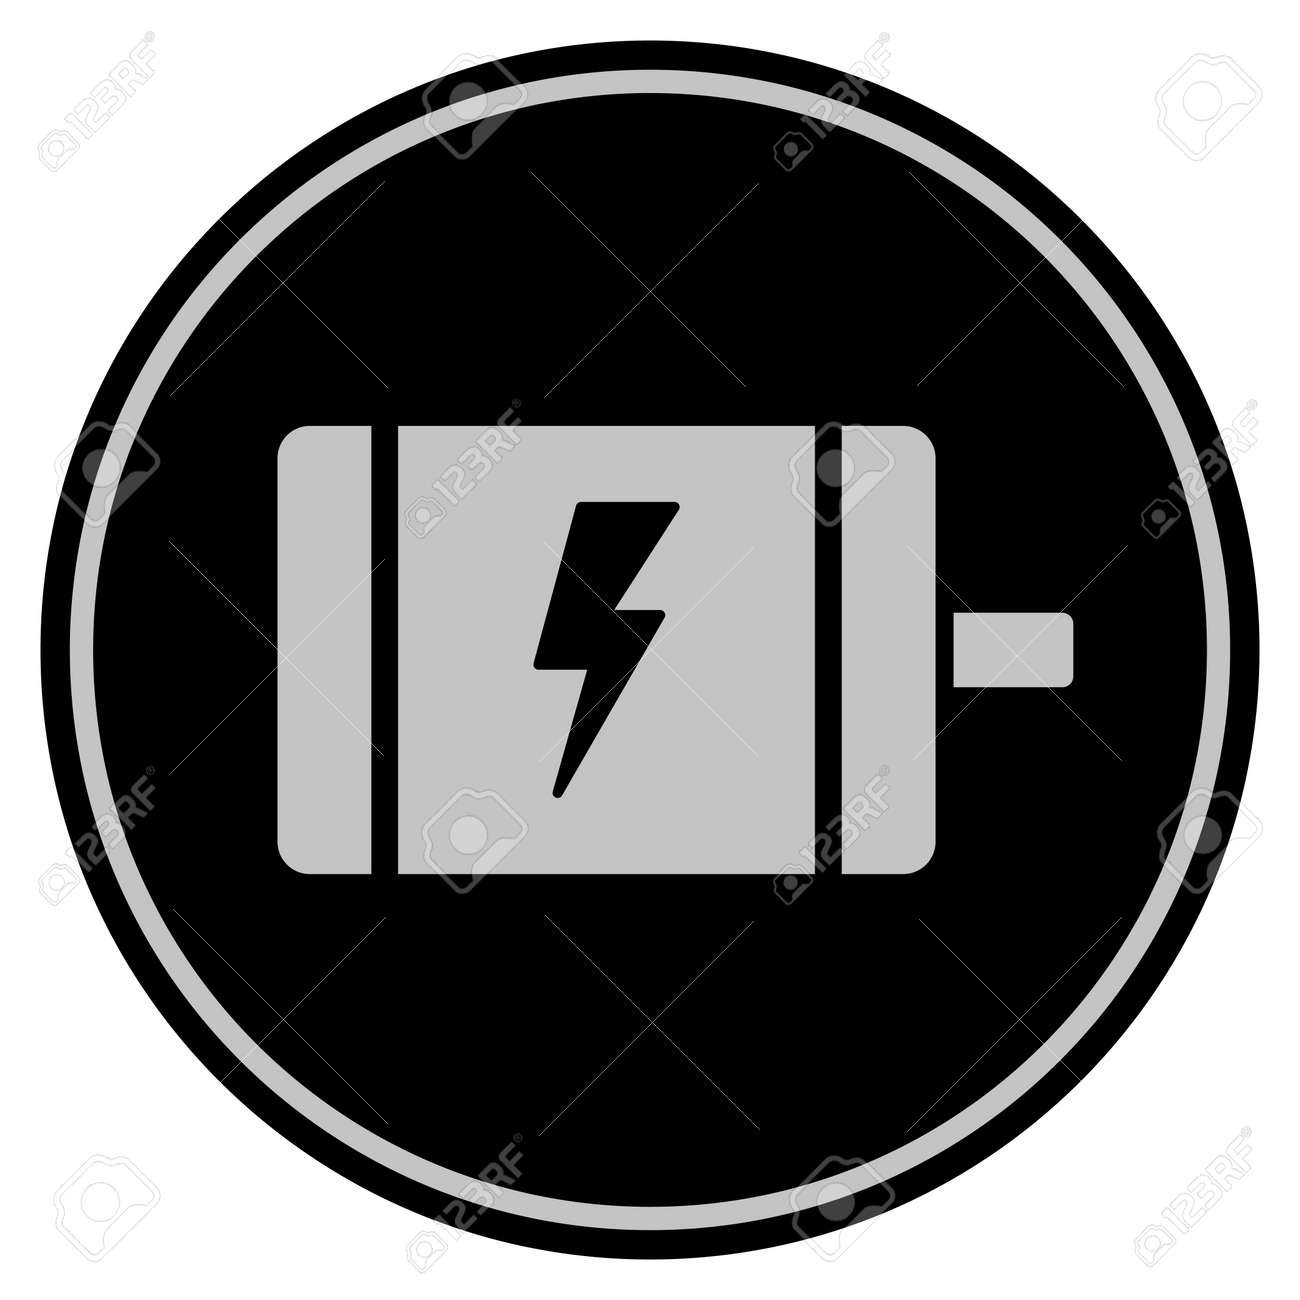 Contemporary Electric Motor Symbol Image - Everything You Need to ...